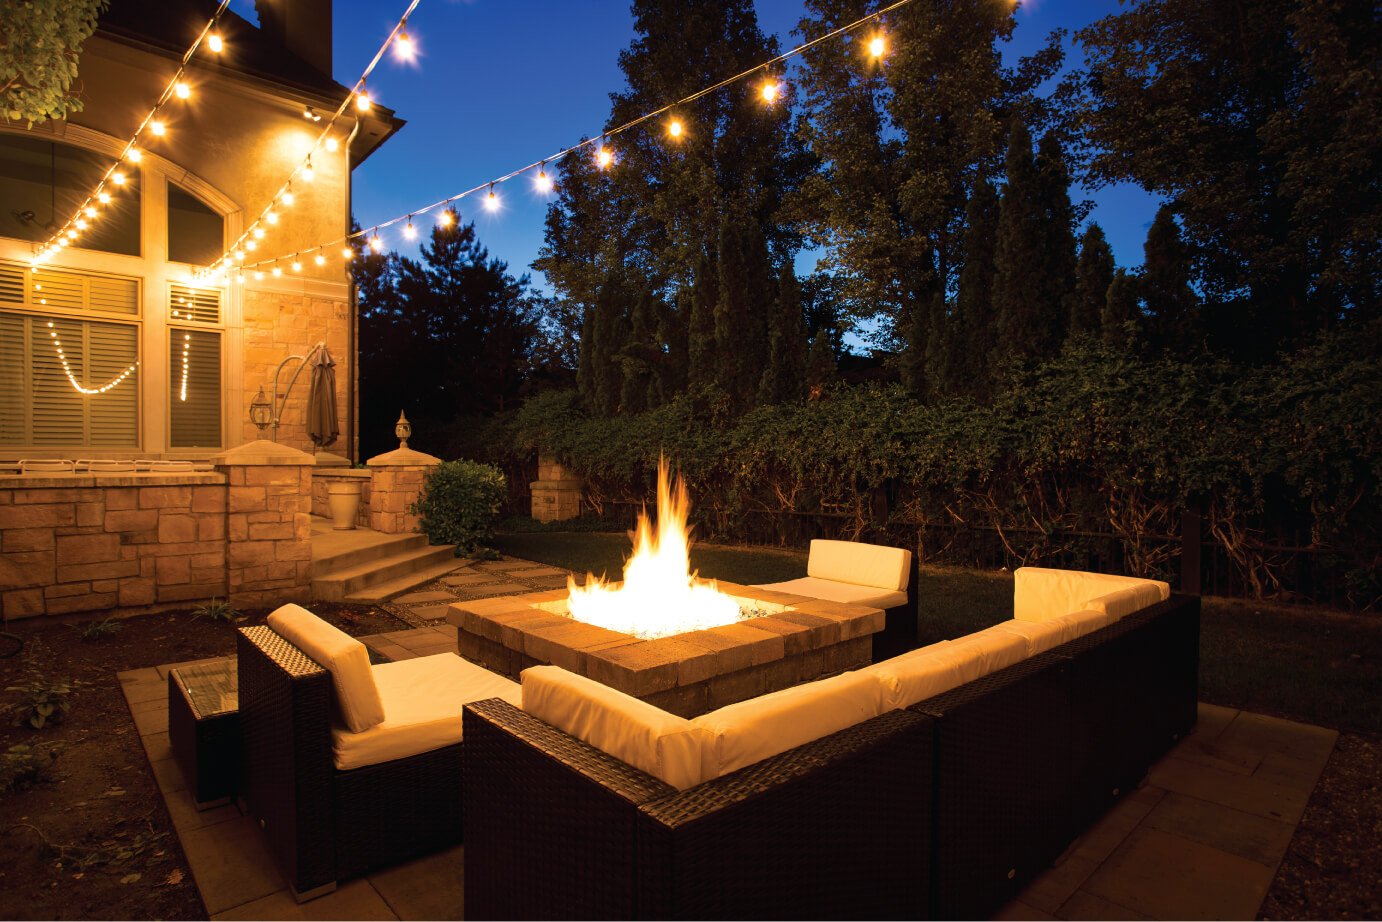 Outdoor landscape lighting design installation brite nites im ready for my free estimate and consultation aloadofball Gallery